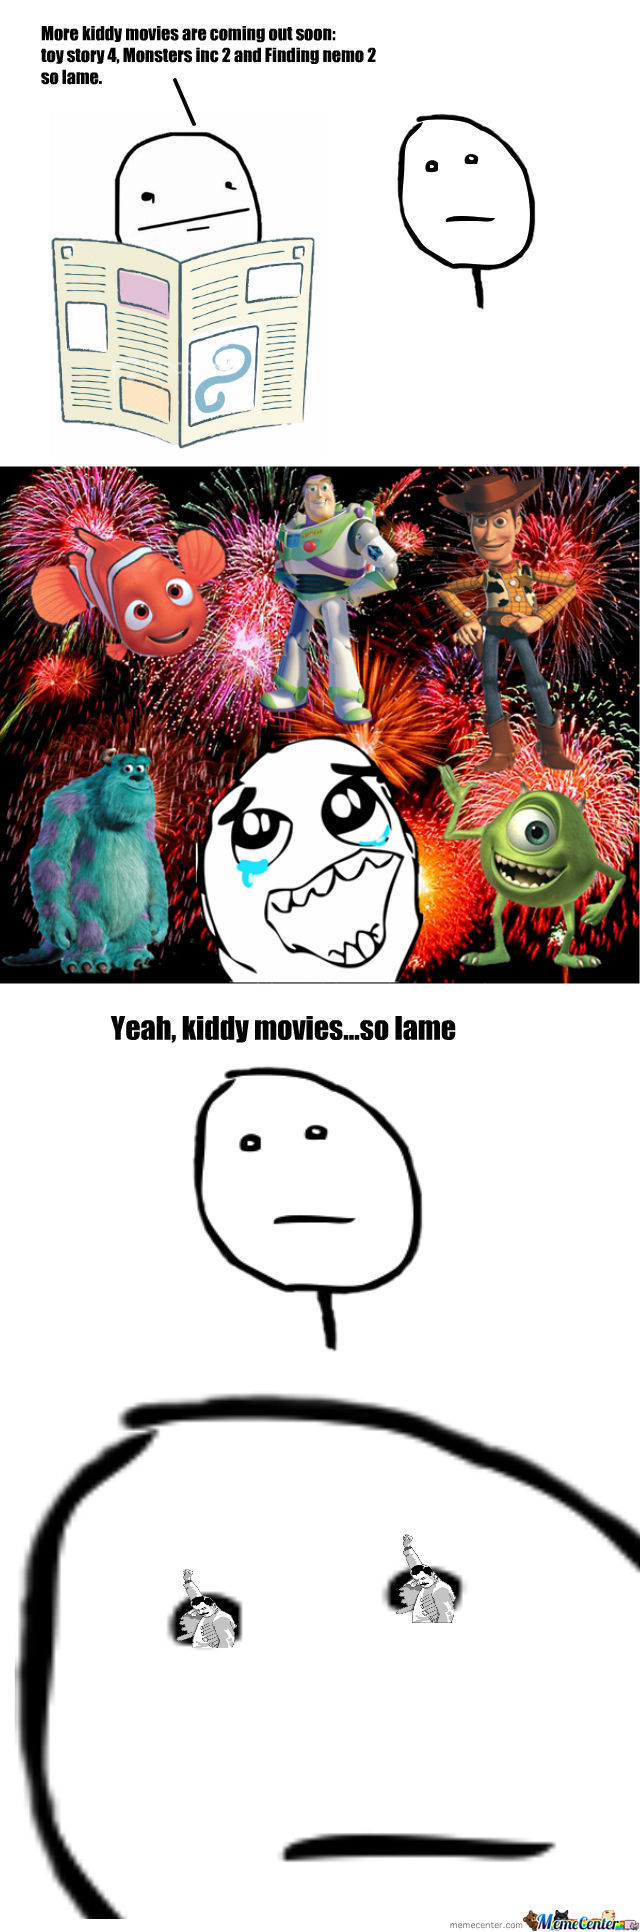 Kiddy Movies